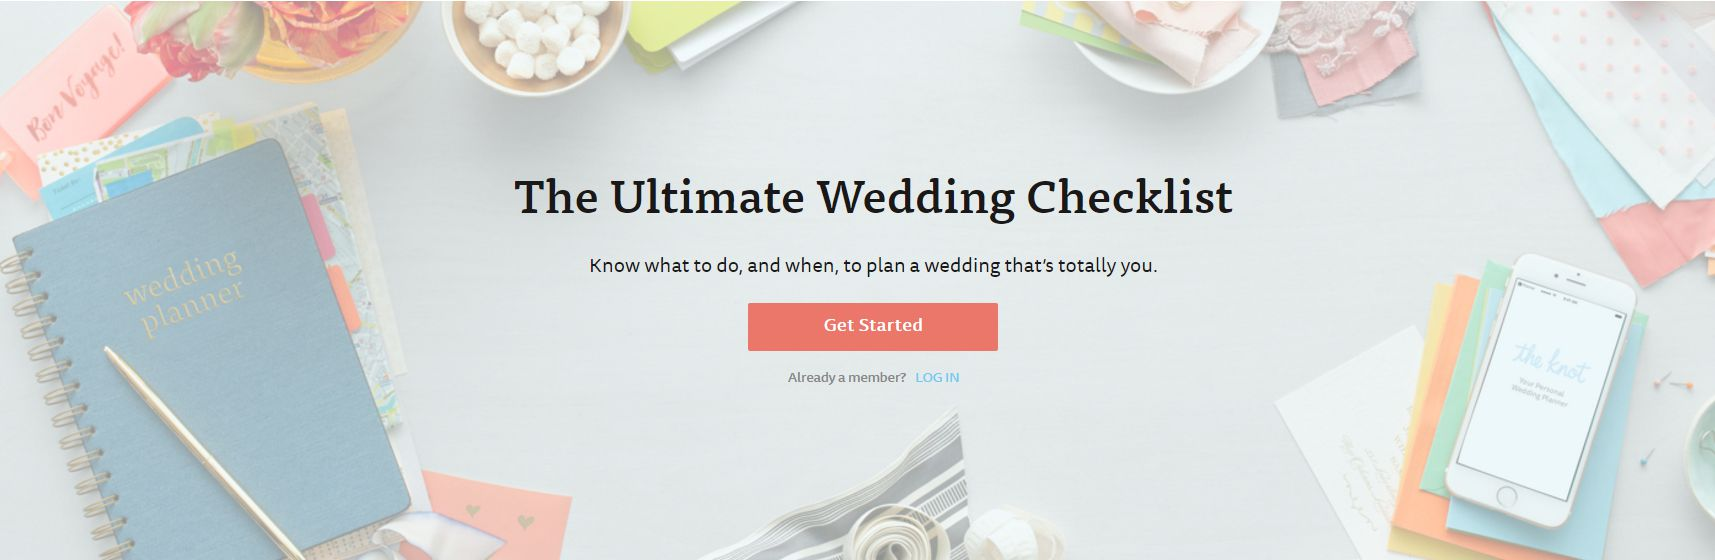 11 free printable wedding planning checklists solutioingenieria Image collections